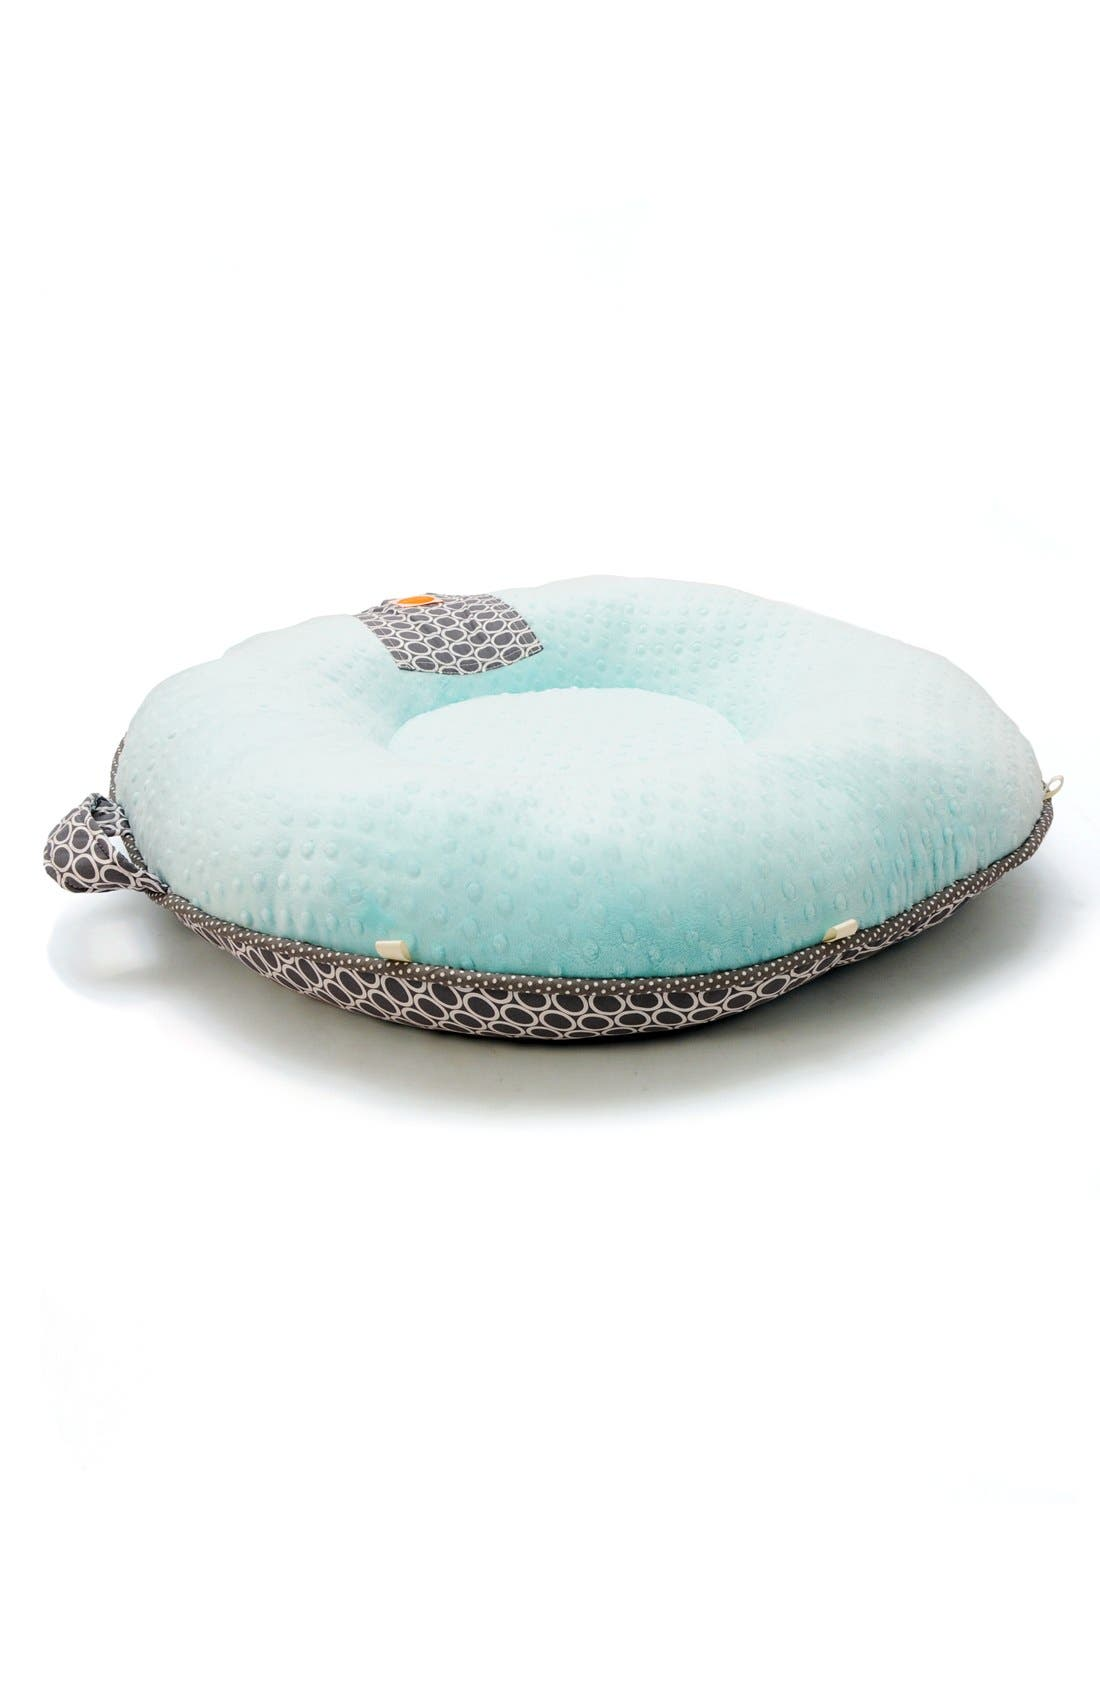 'Majestic' Portable Floor Pillow,                             Alternate thumbnail 2, color,                             Grey/ Aqua